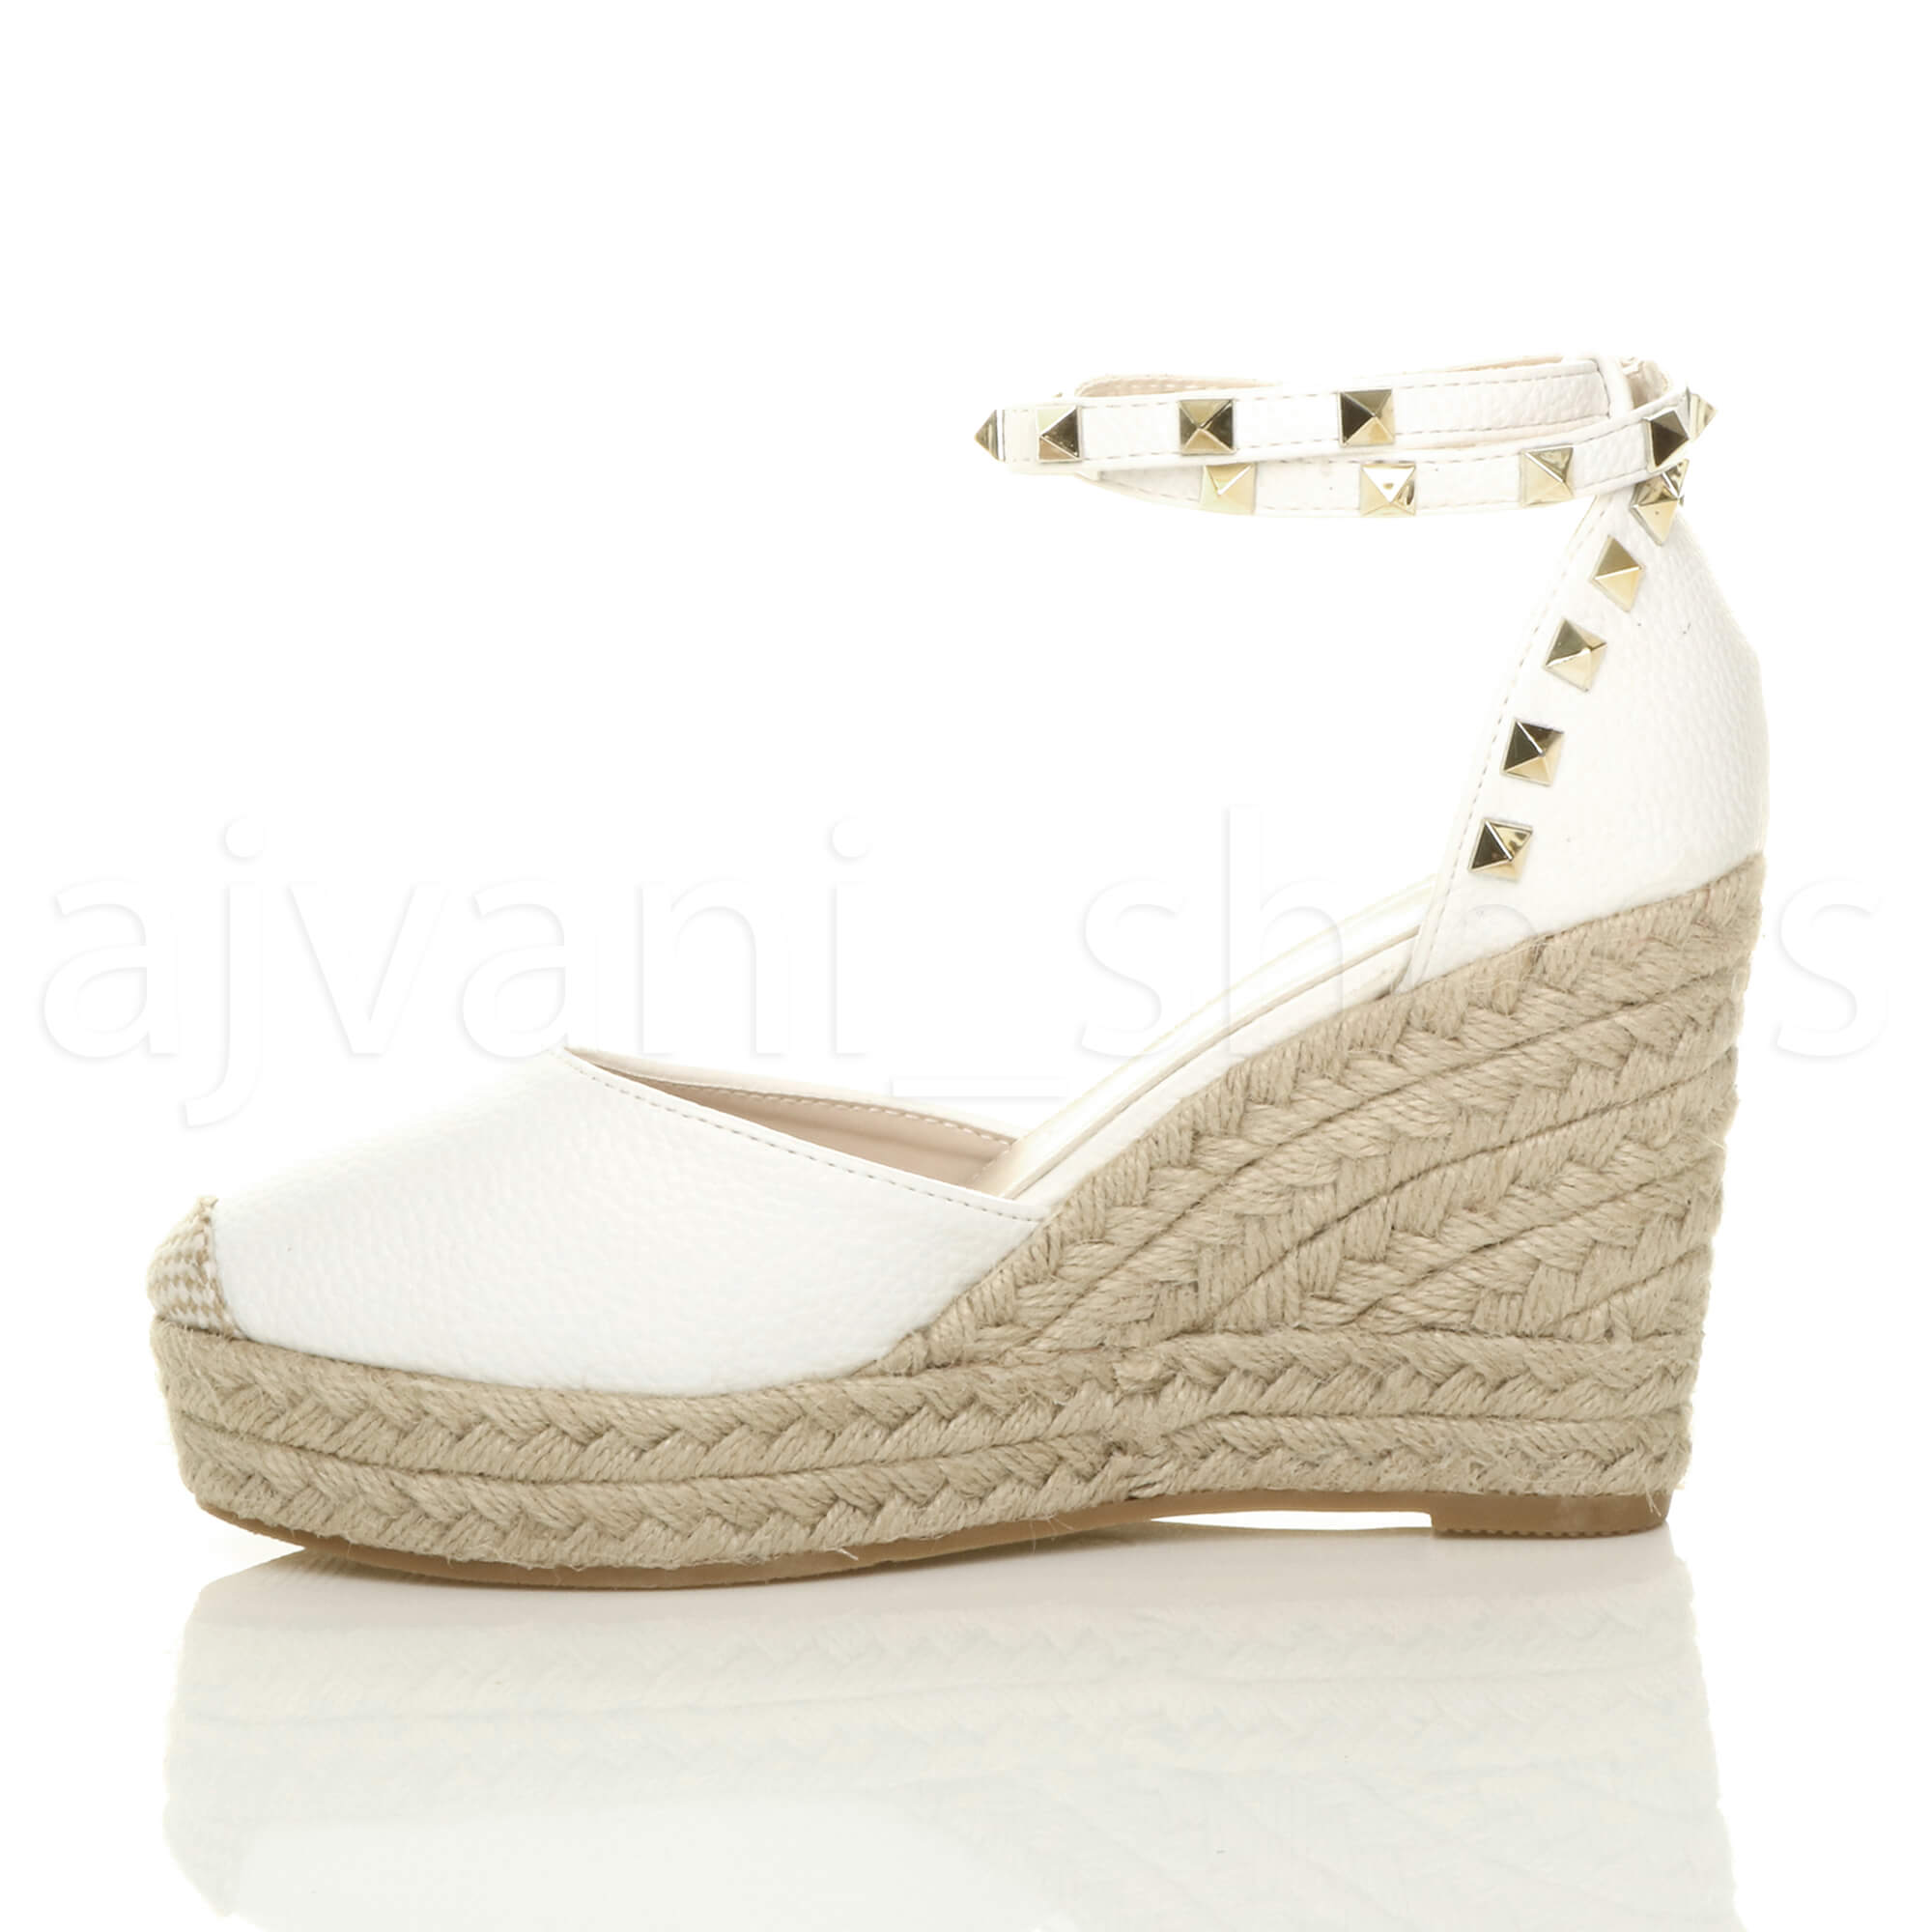 WOMENS-LADIES-HIGH-WEDGE-HEEL-STUDDED-ANKLE-STRAP-ESPADRILLES-SHOES-SANDALS-SIZE